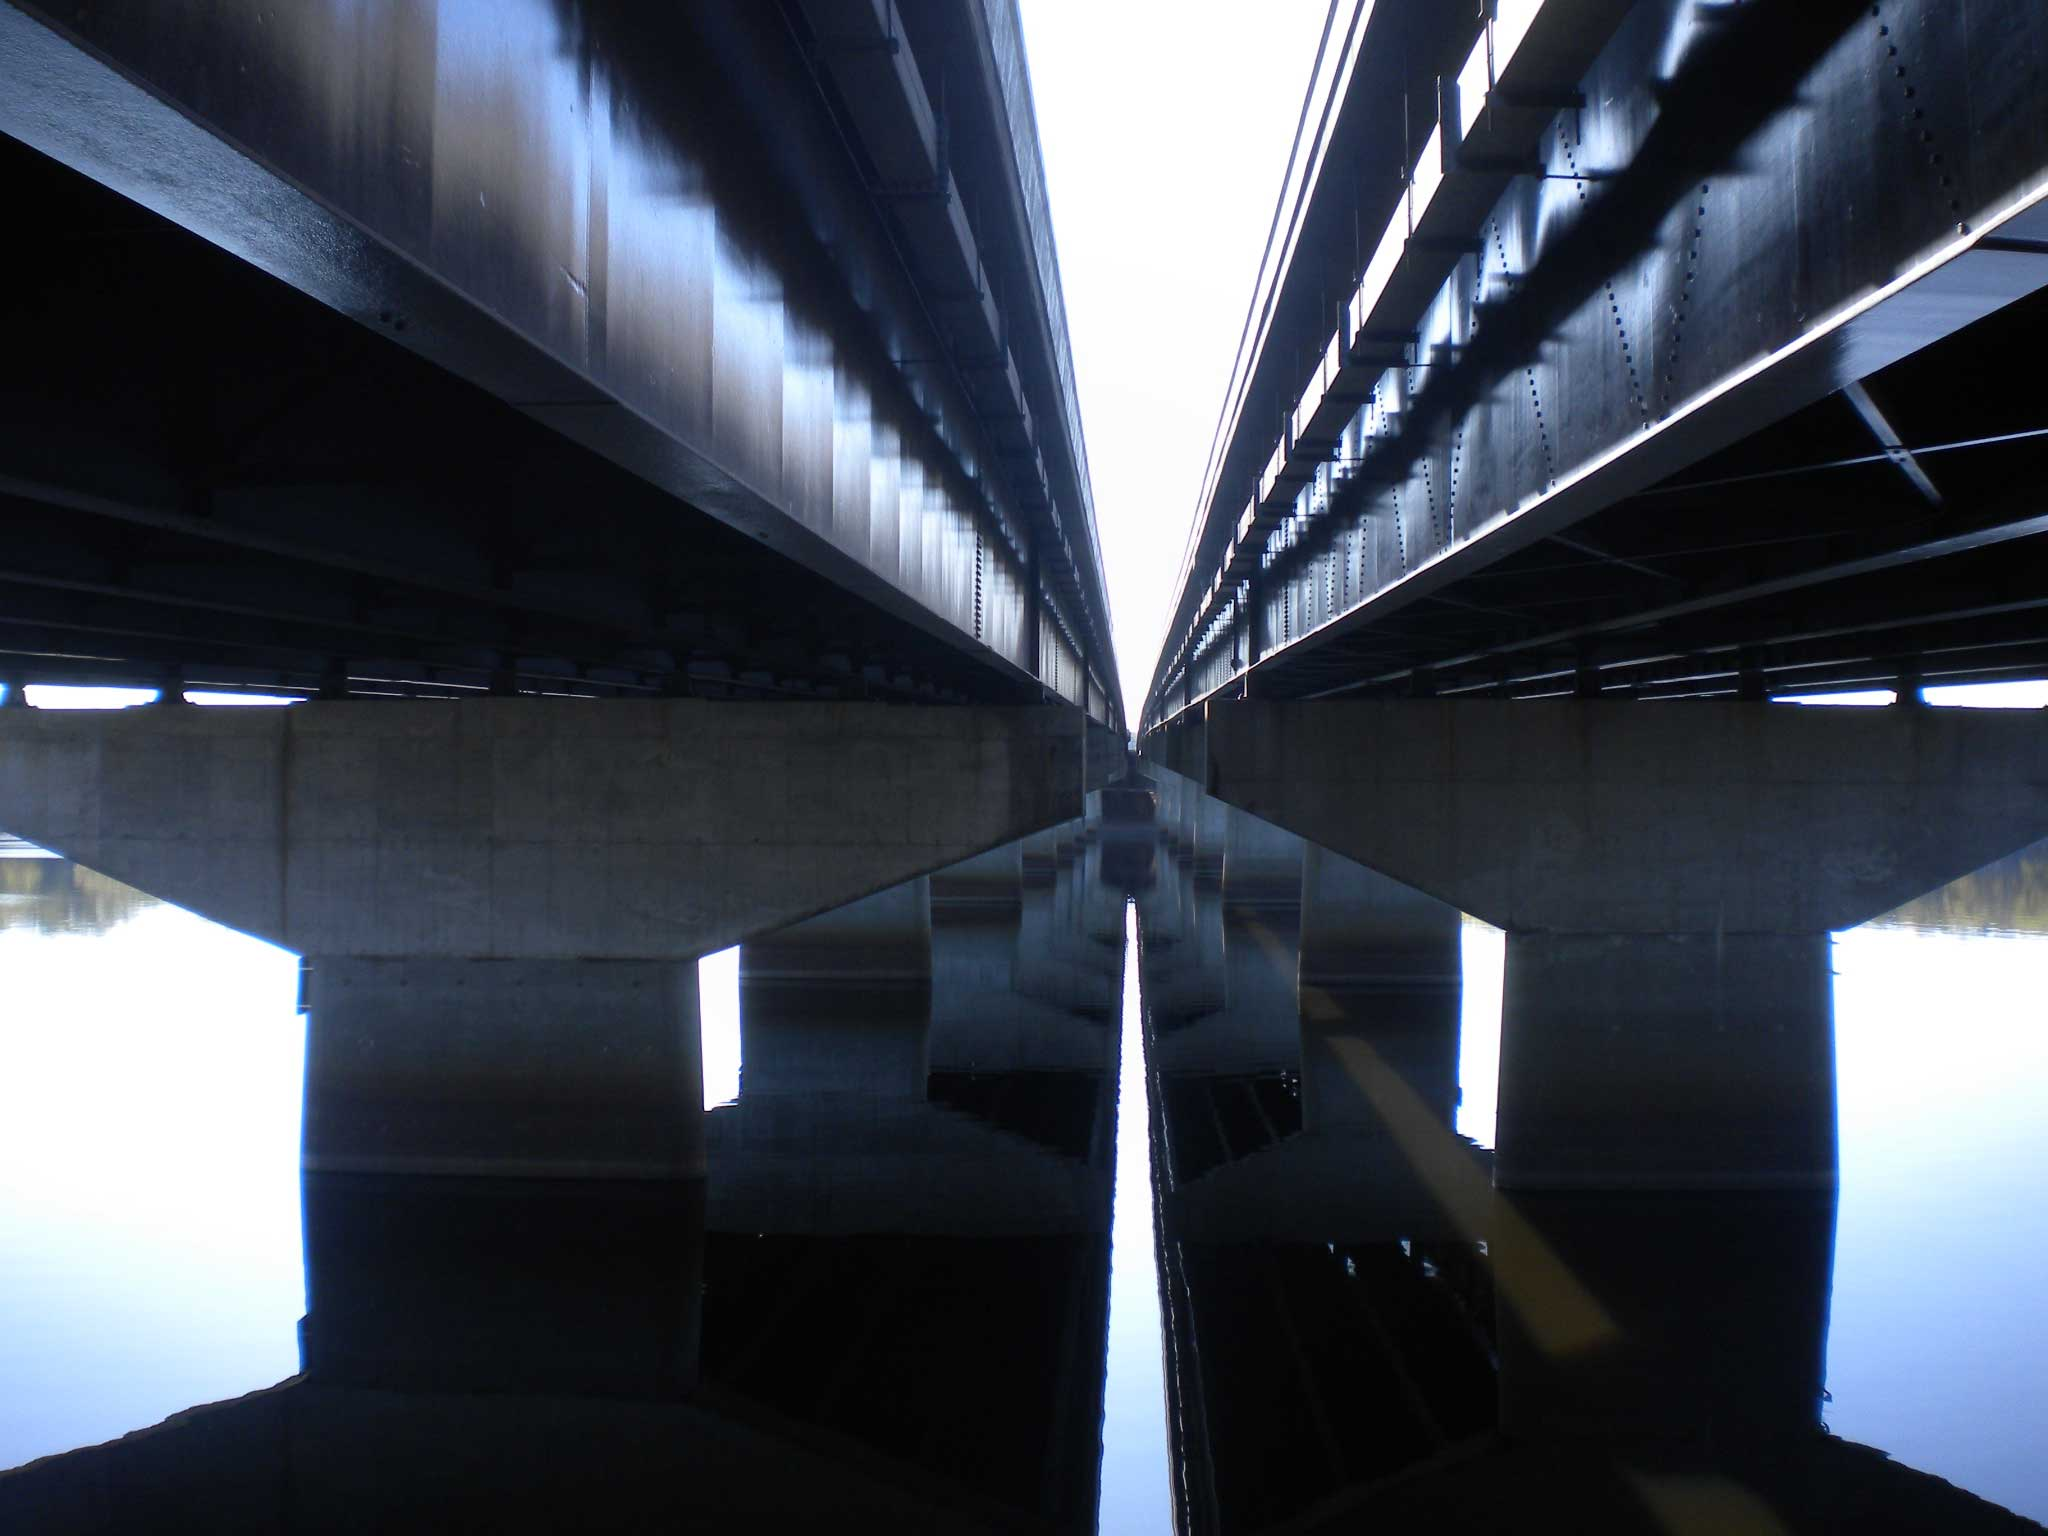 A vanishing point between parallel viaducts and their reflections in Minnesota.